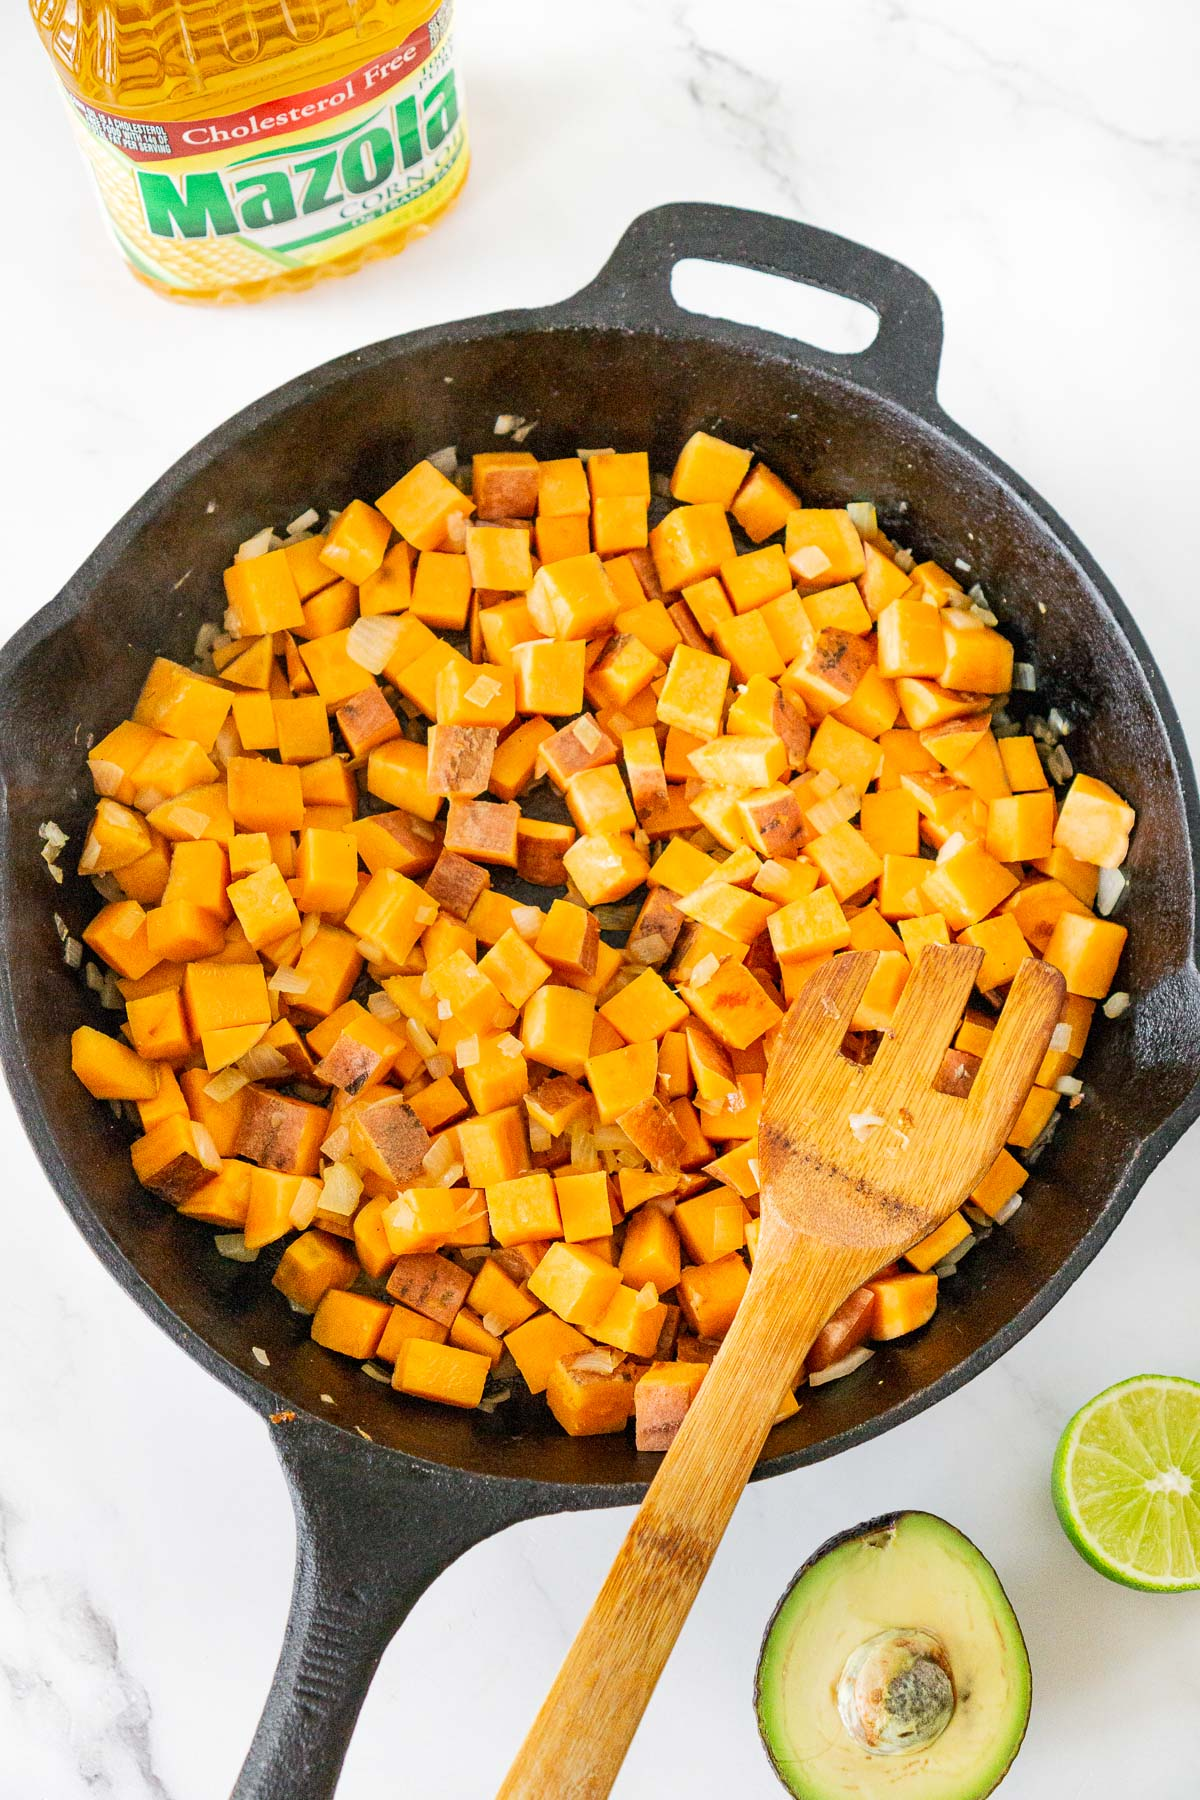 cubed sweet potato cooked in a skillet